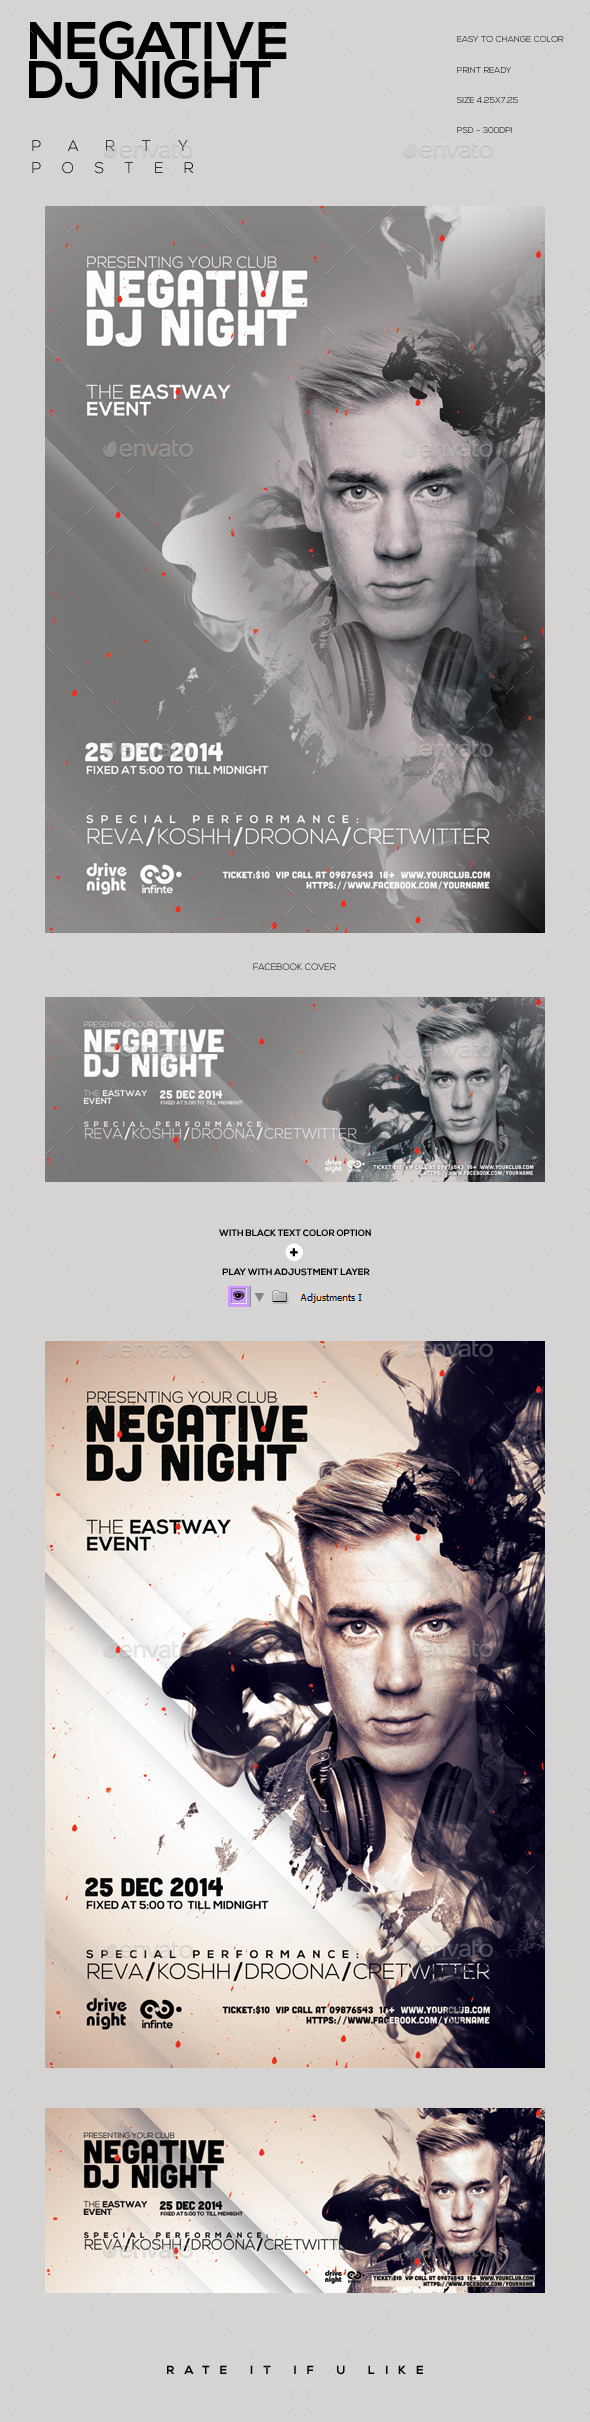 Negative Dj Night Party Flyer - Clubs & Parties Events